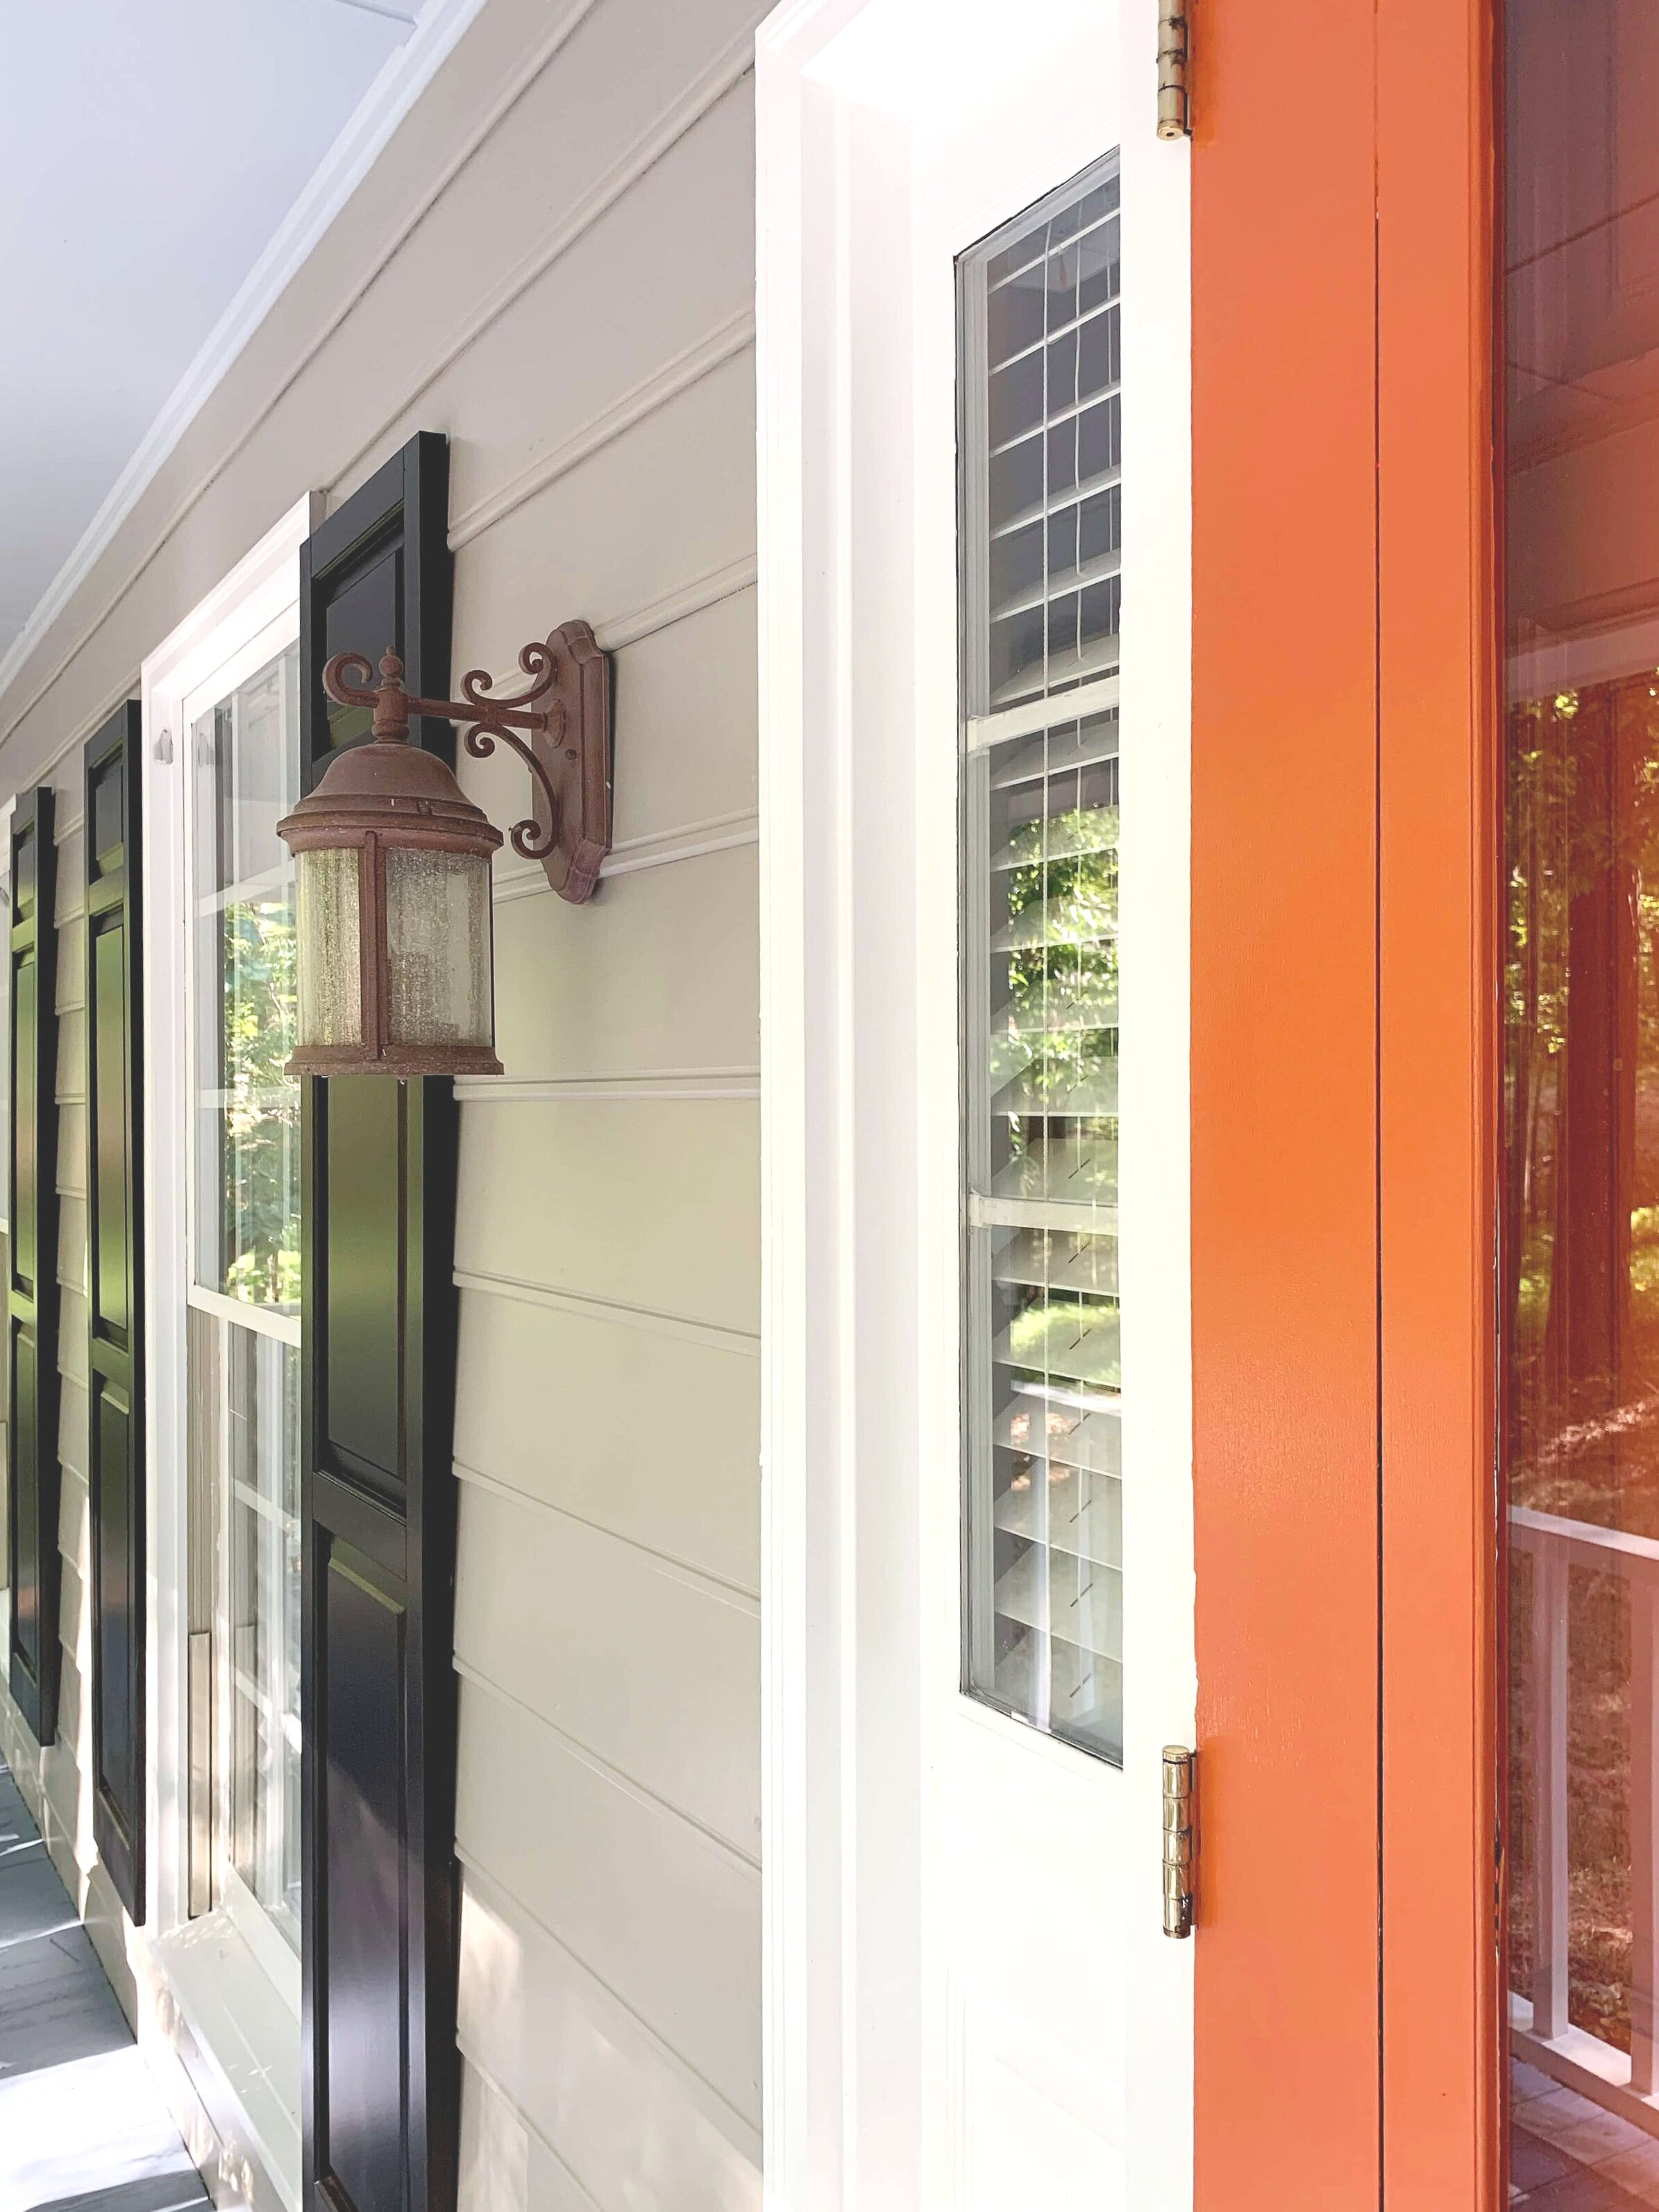 Walls, shutters, trim, door - see how all the exterior paint colors are working together?